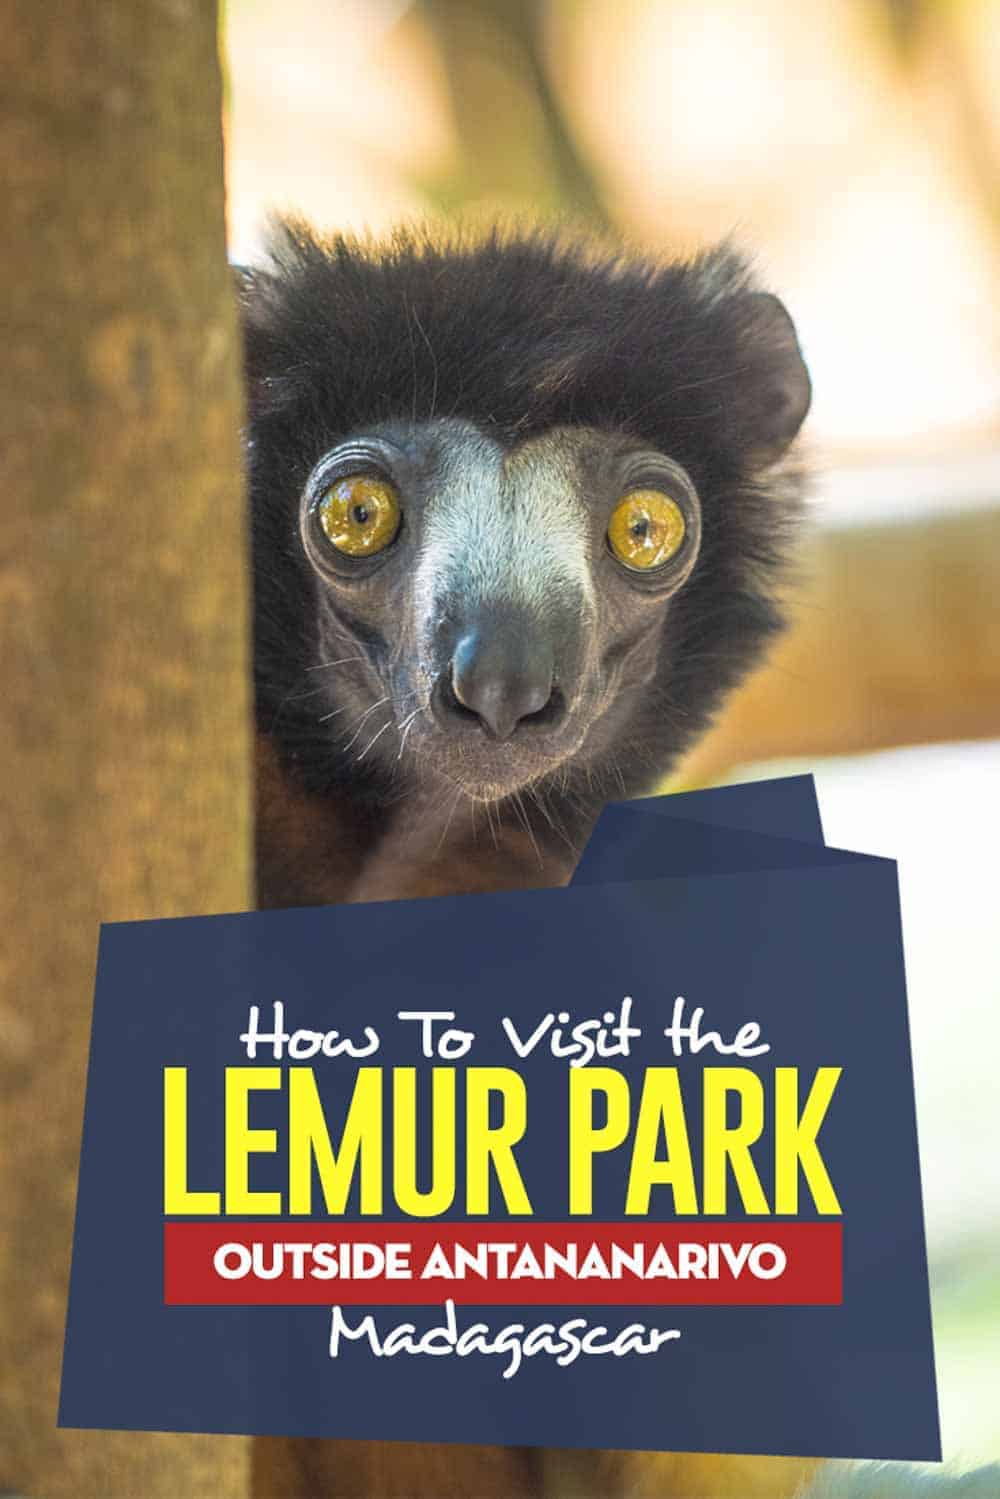 Travel Guide to See Lemur in the Lemurs outside the capital of Madagascar. #madagascar #africa #wildlife #animals #lemur